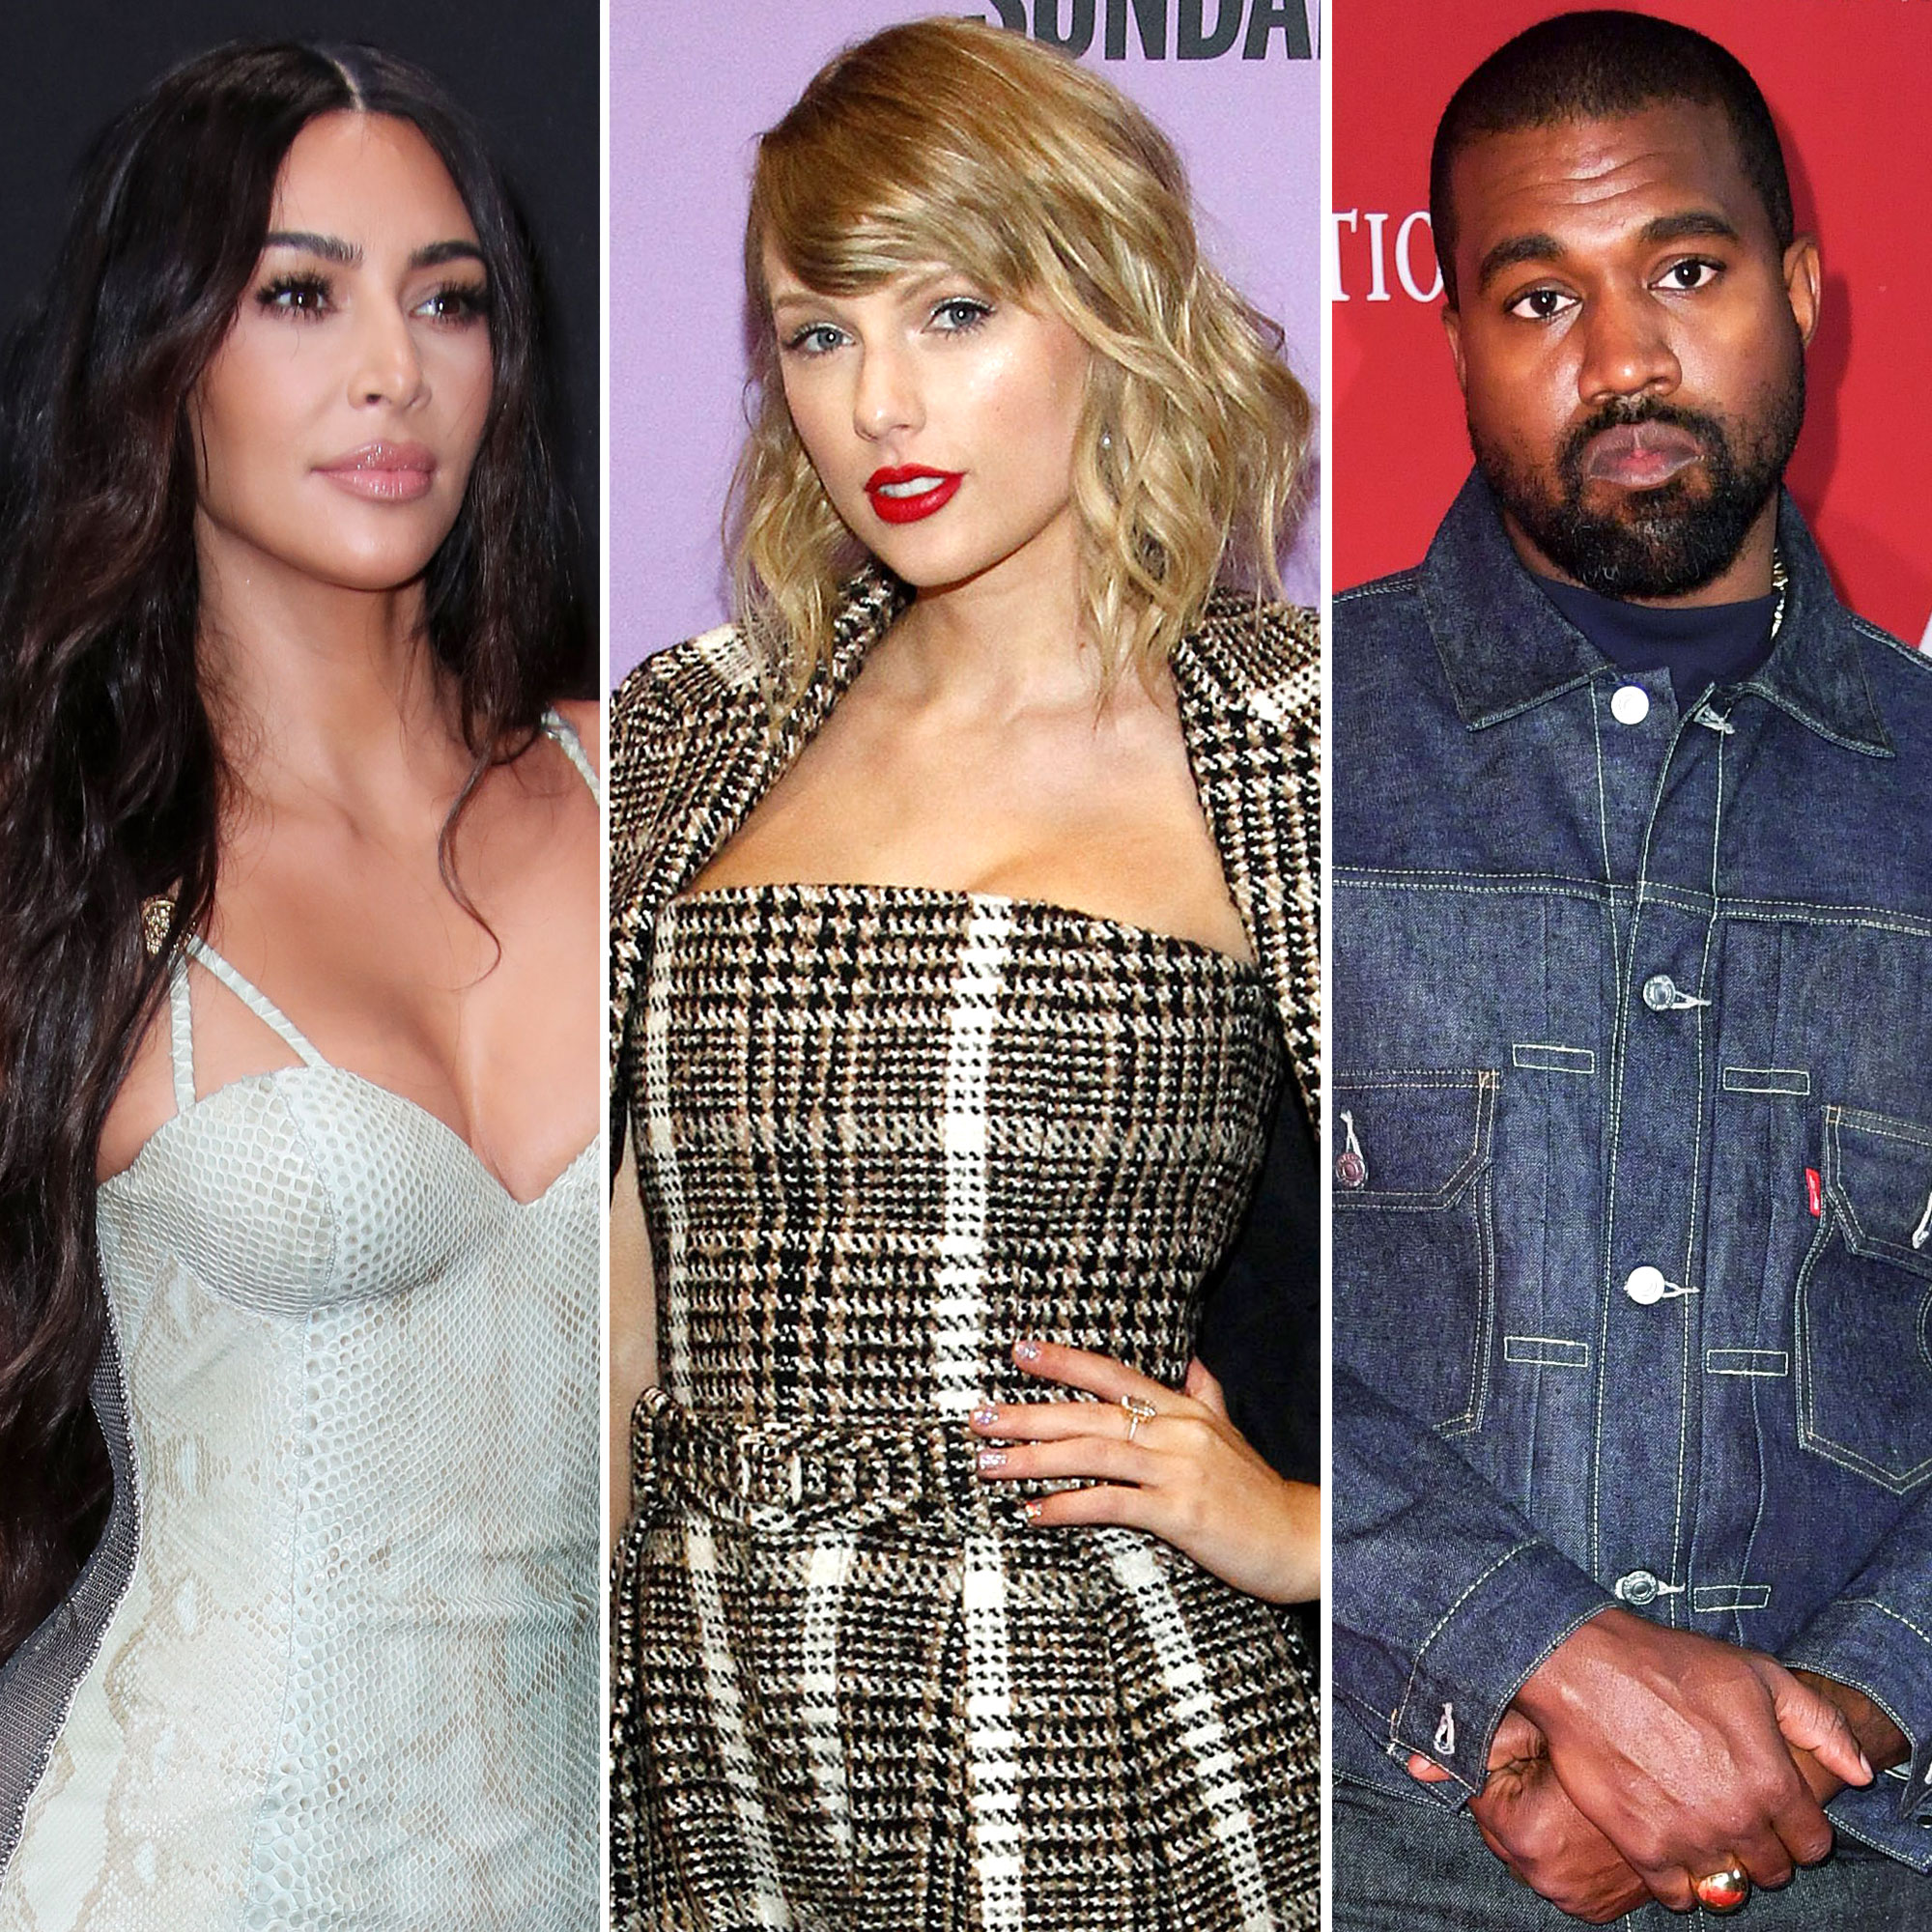 Kim Kardashian Accuses Taylor Swift Of Lying Over Kanye West Video